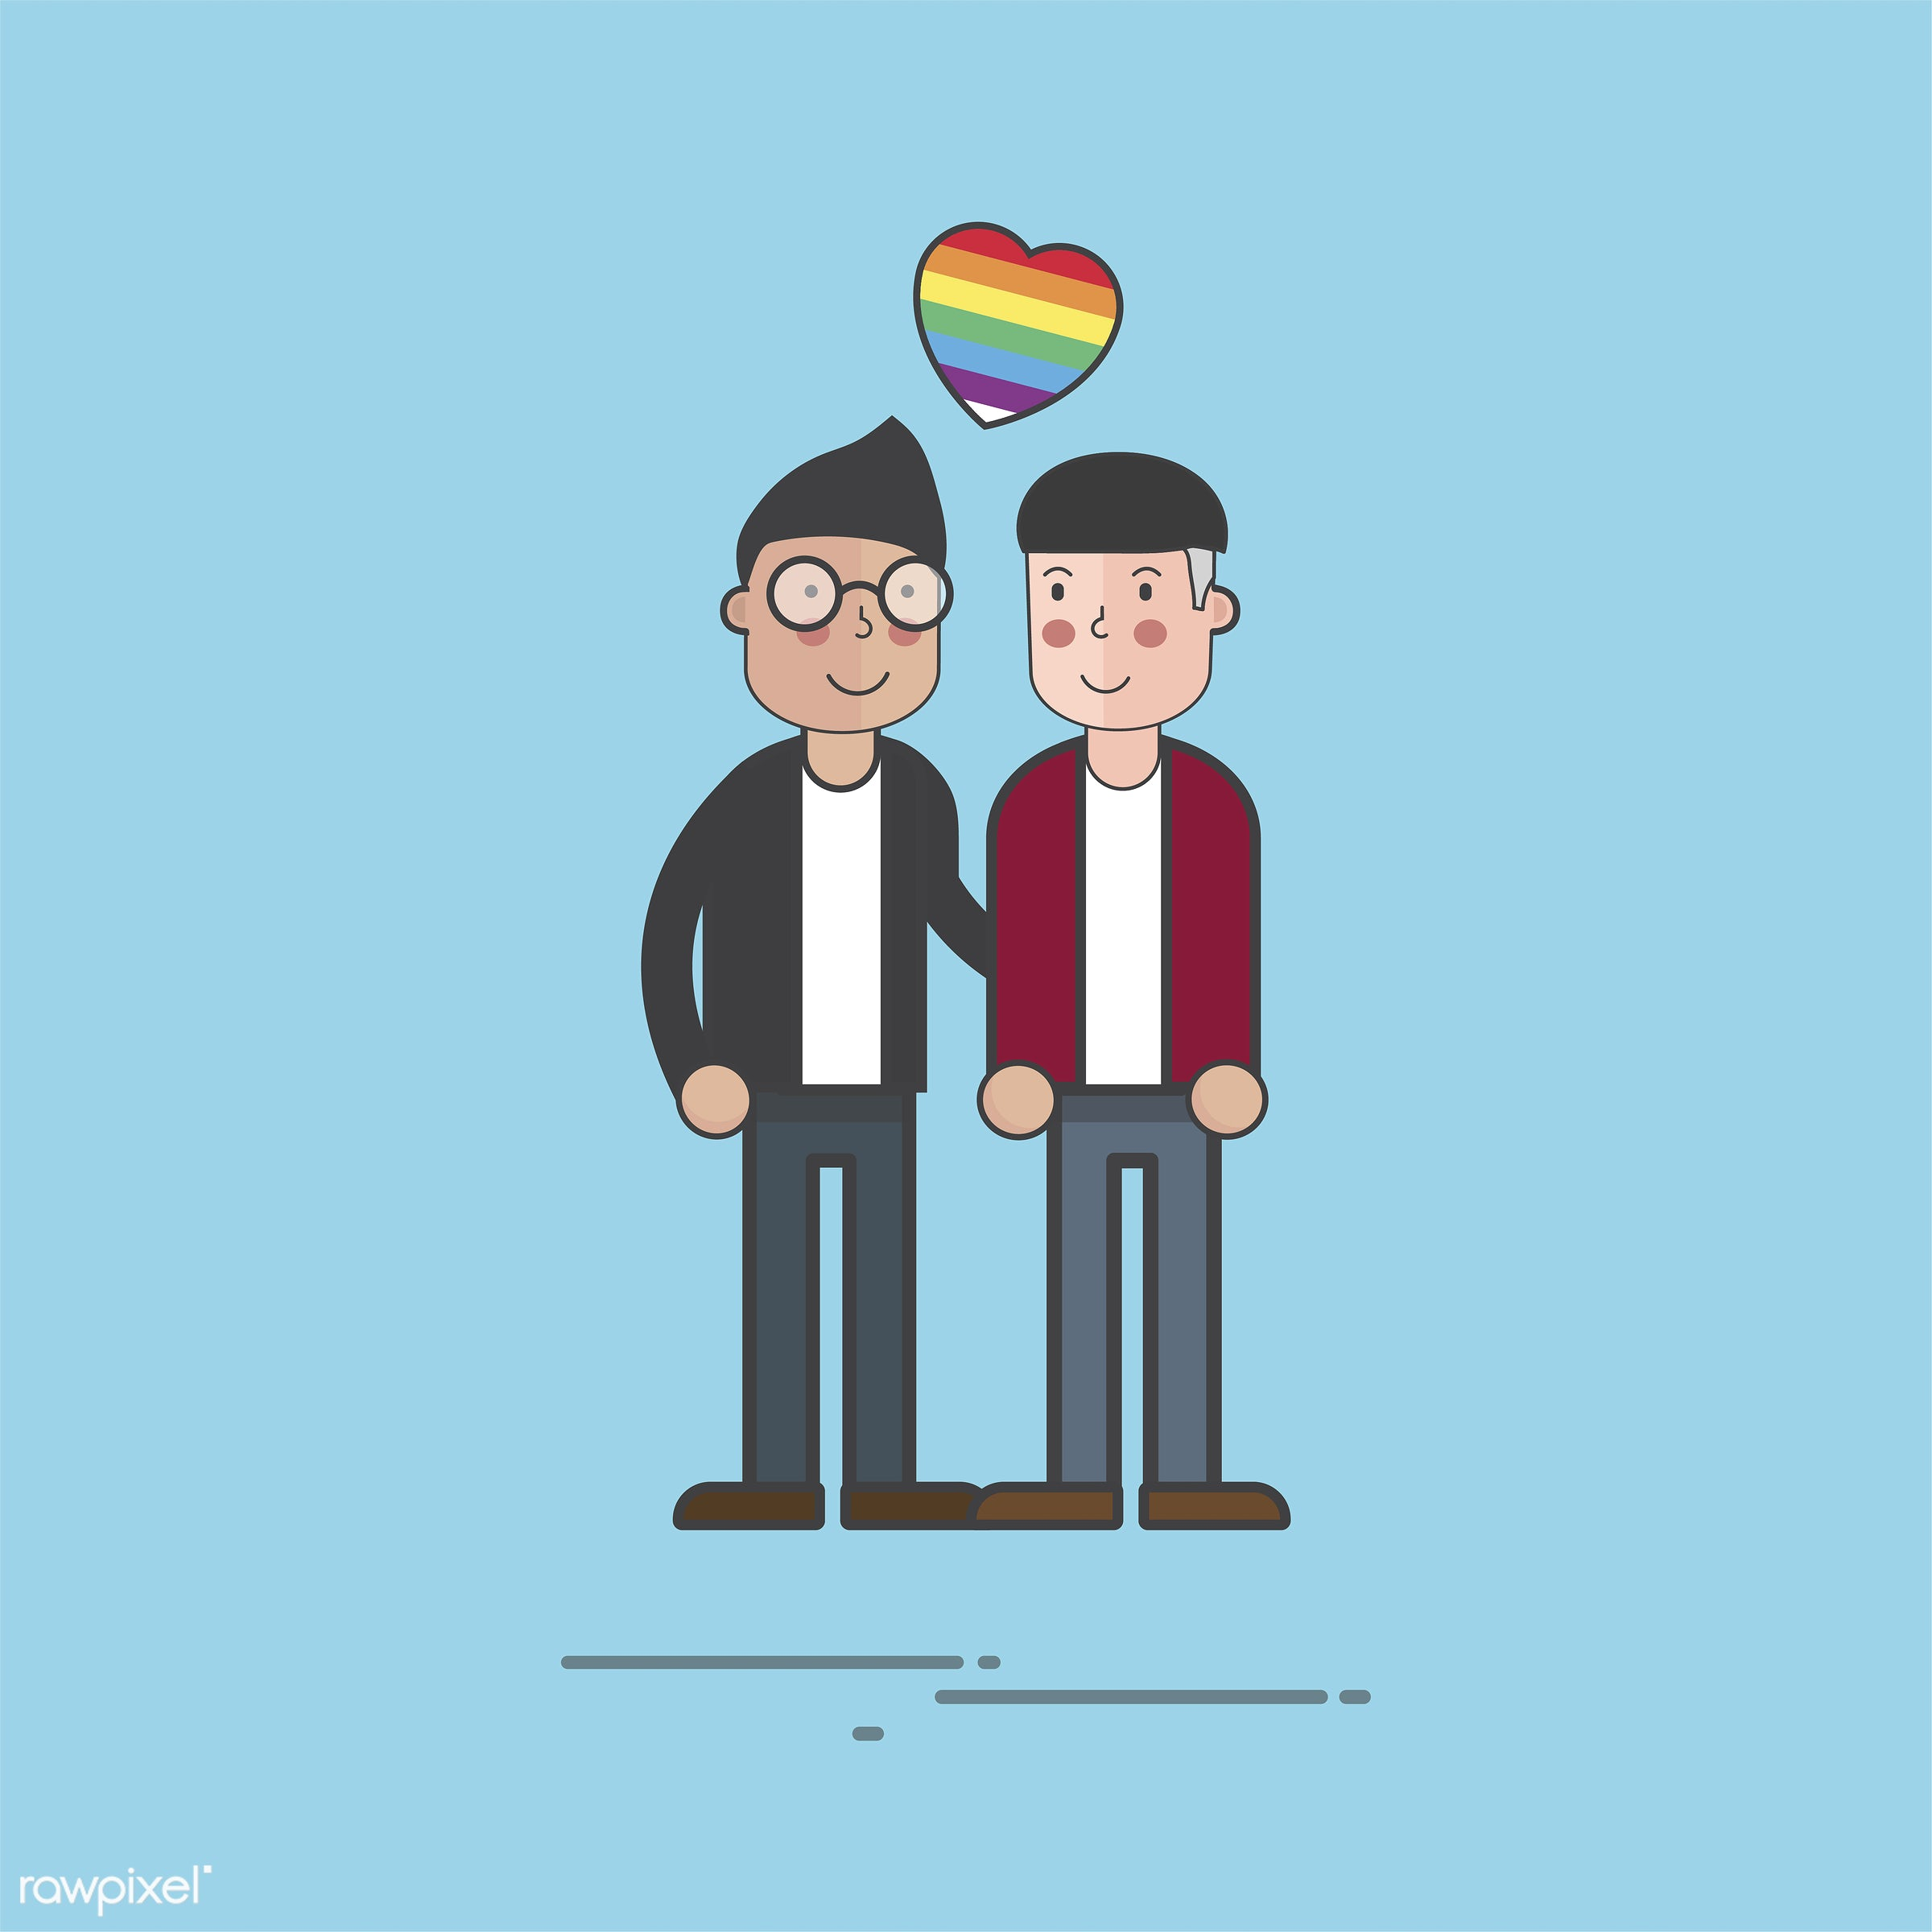 Illustration of people avatar - heart, valentine, adult, avatar, cartoon, character, couple, dating, drawing, equality, gay...